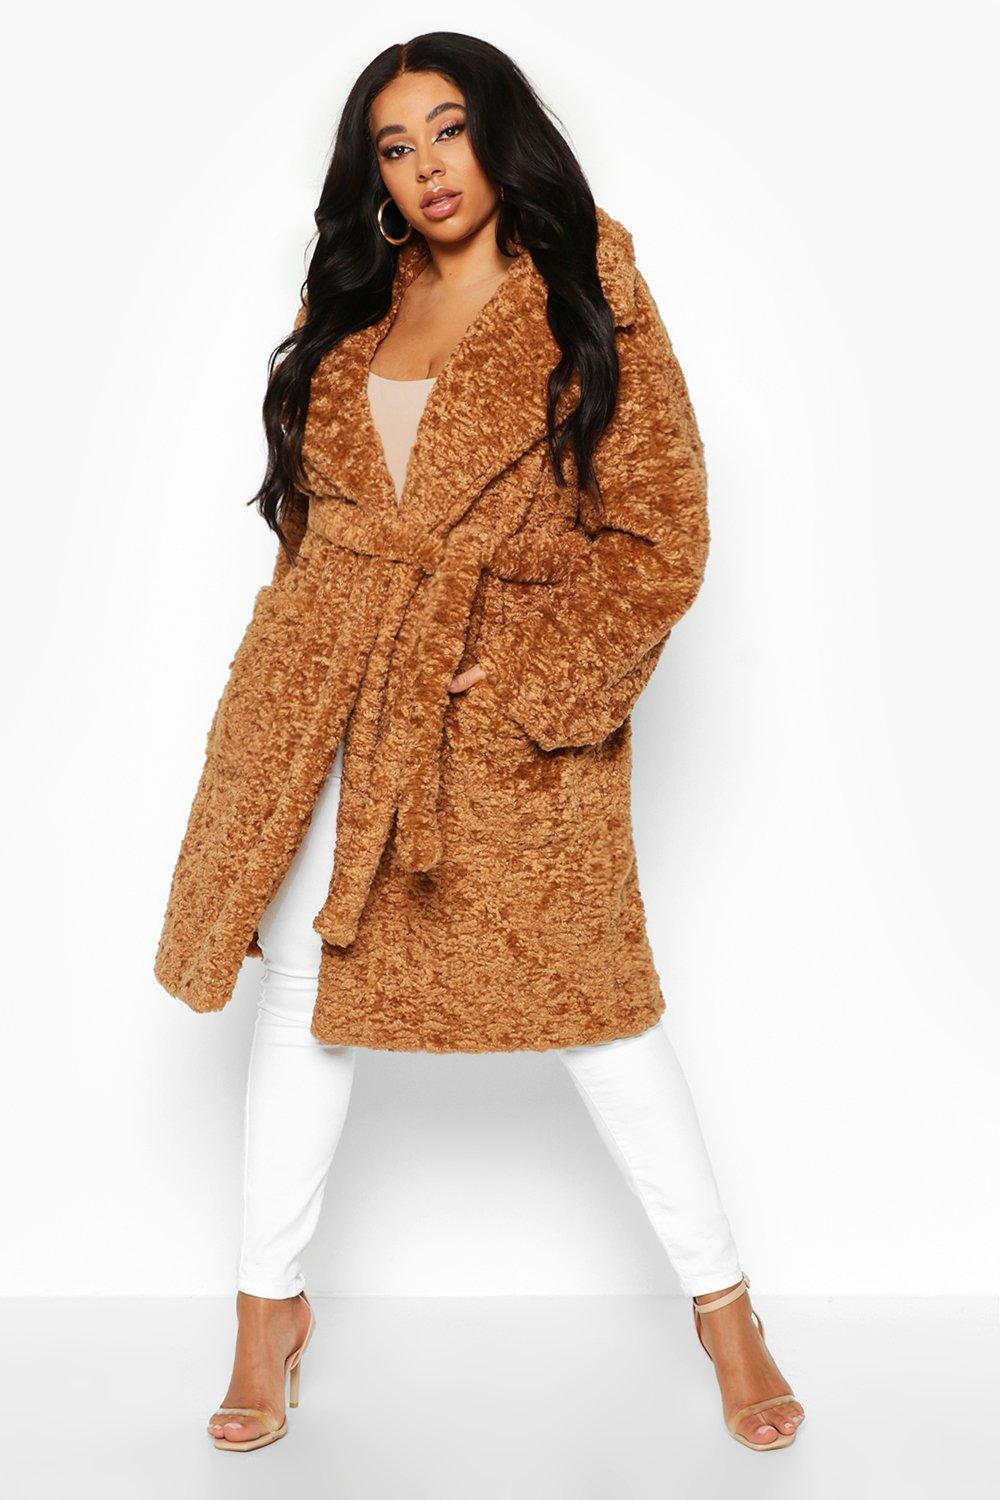 boohoo Womens Plus Teddy Faux Fur Belted Mid Length Coat - Beige - 16, Beige